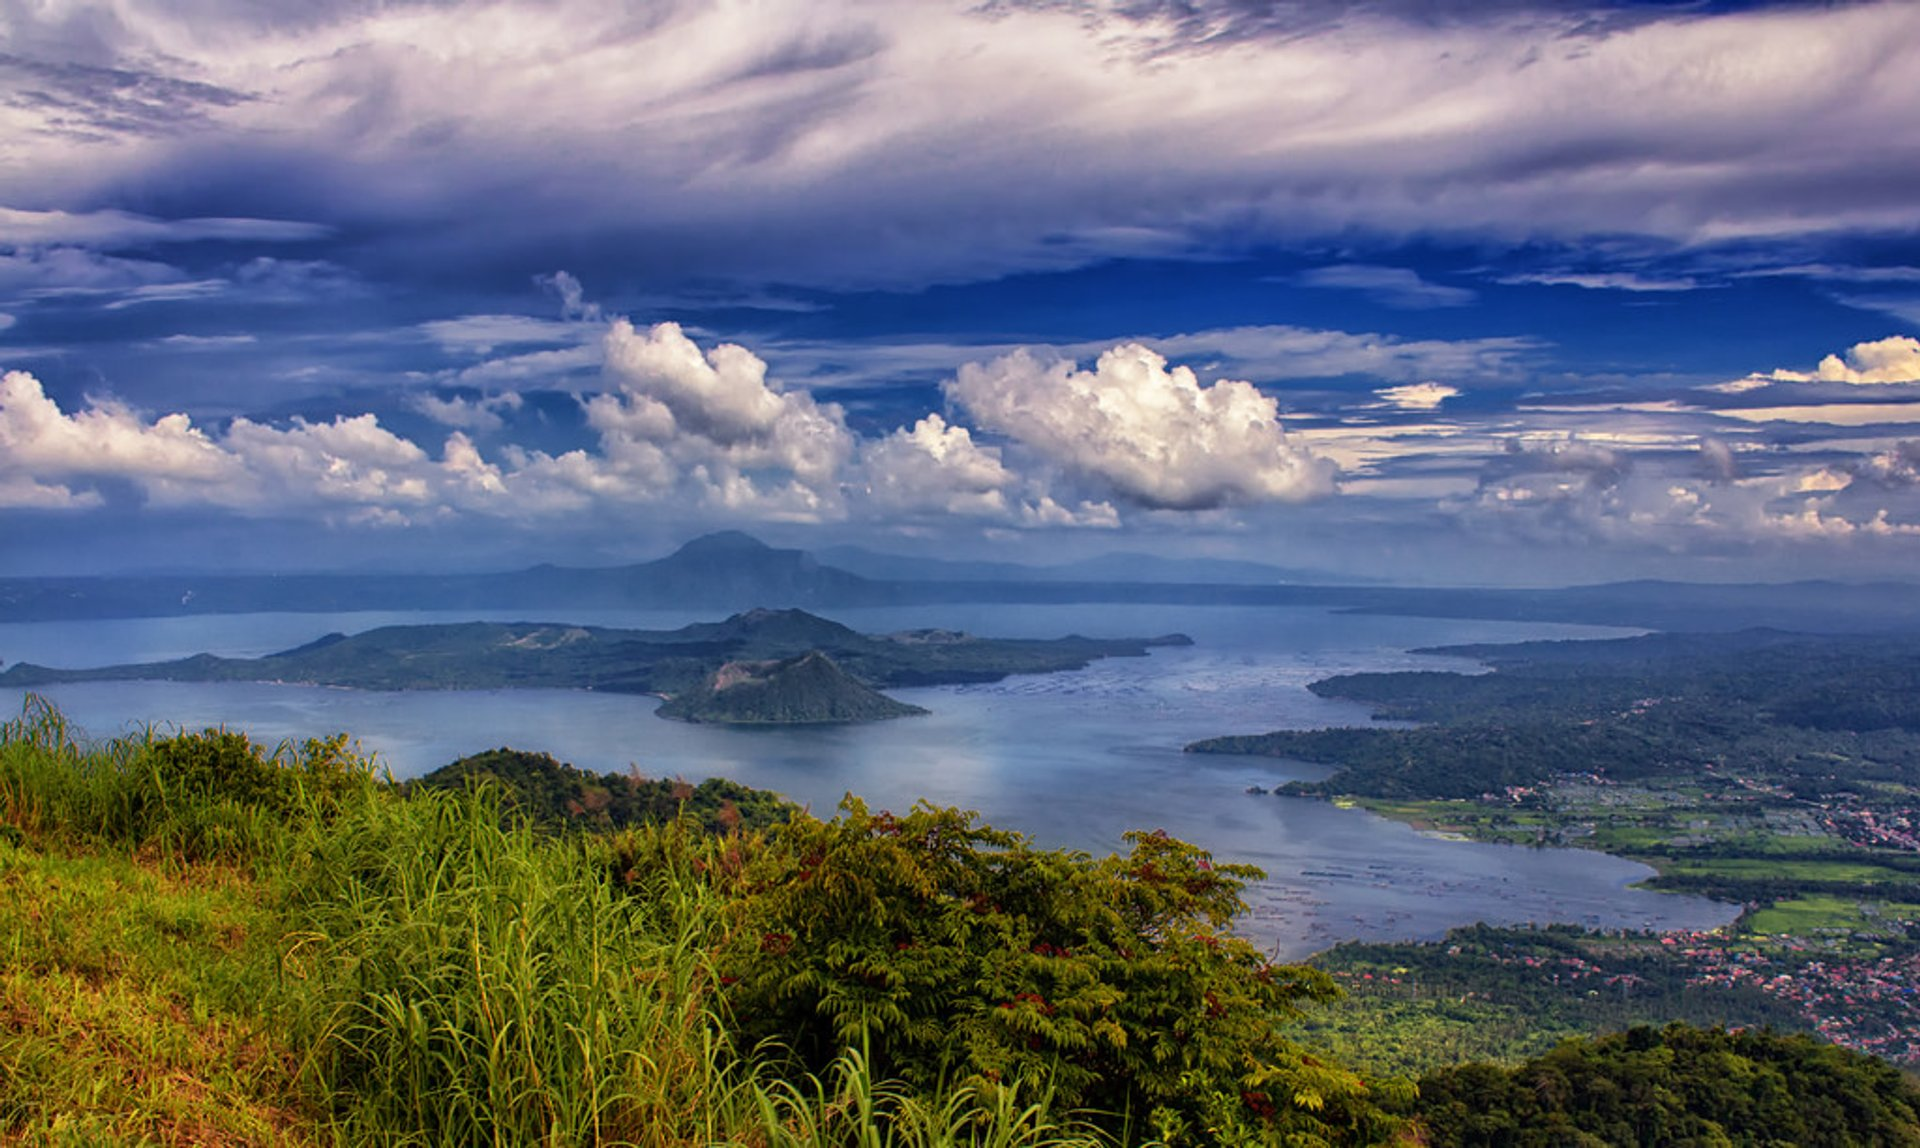 Taal Volcano in Philippines 2019 - Best Time